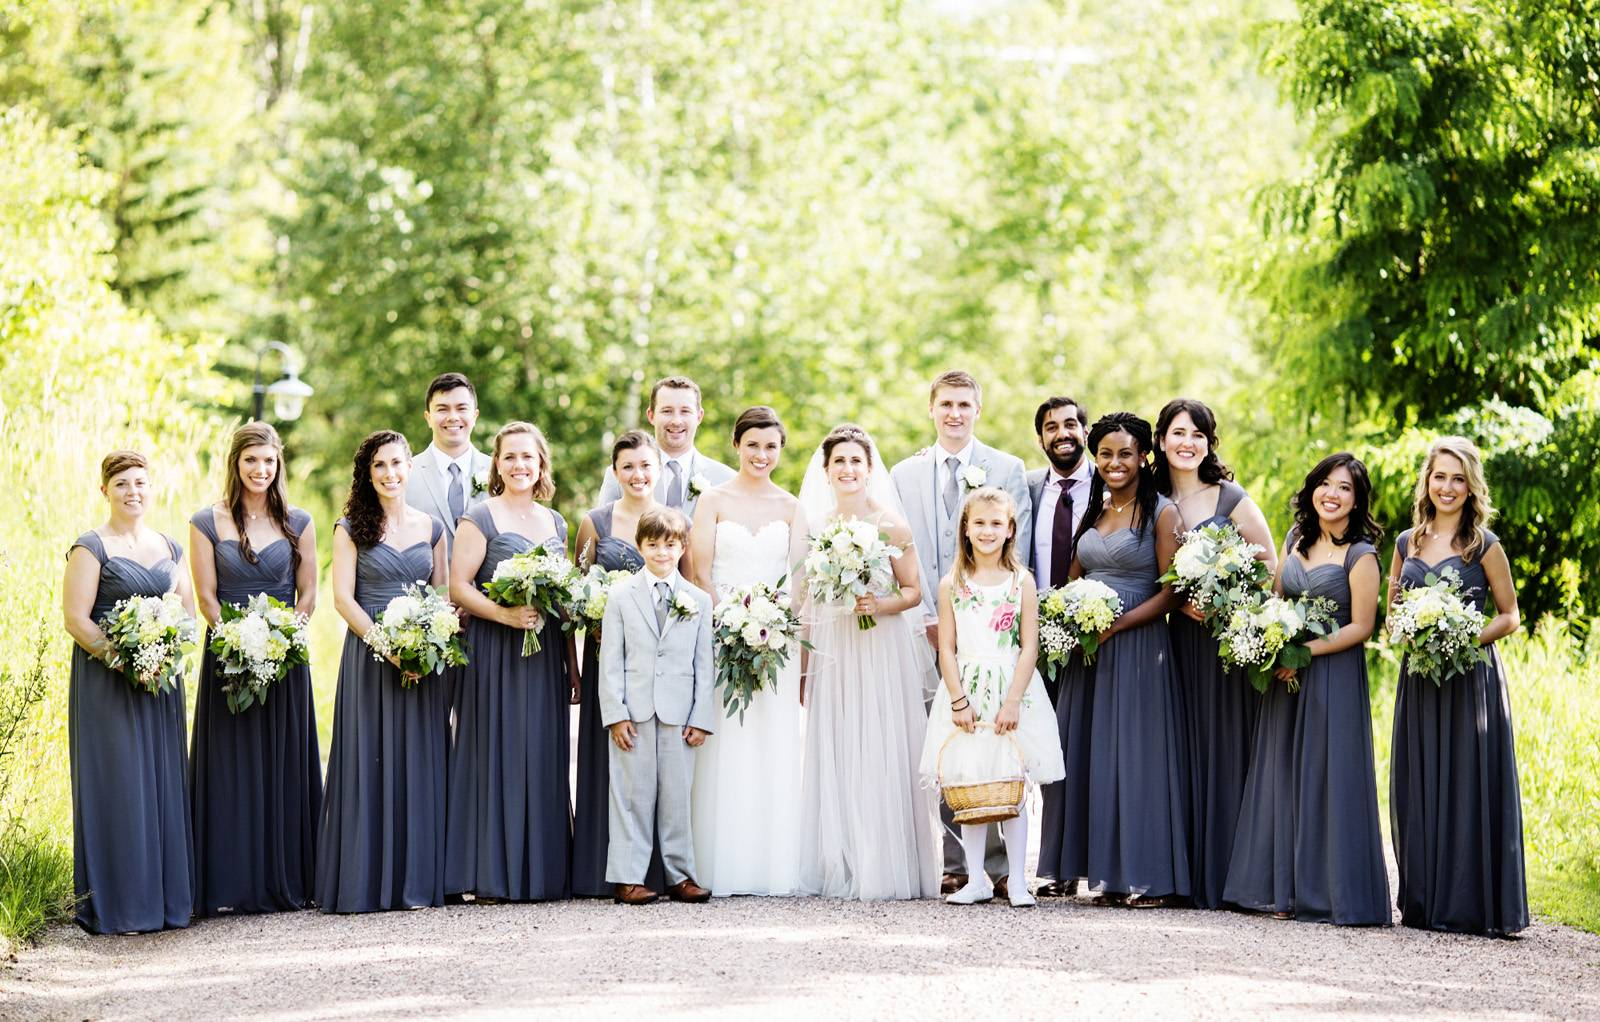 Gray bridesmaid dresses and groomsmen suits wedding party at The Ponds at Bolton Valley for summer V